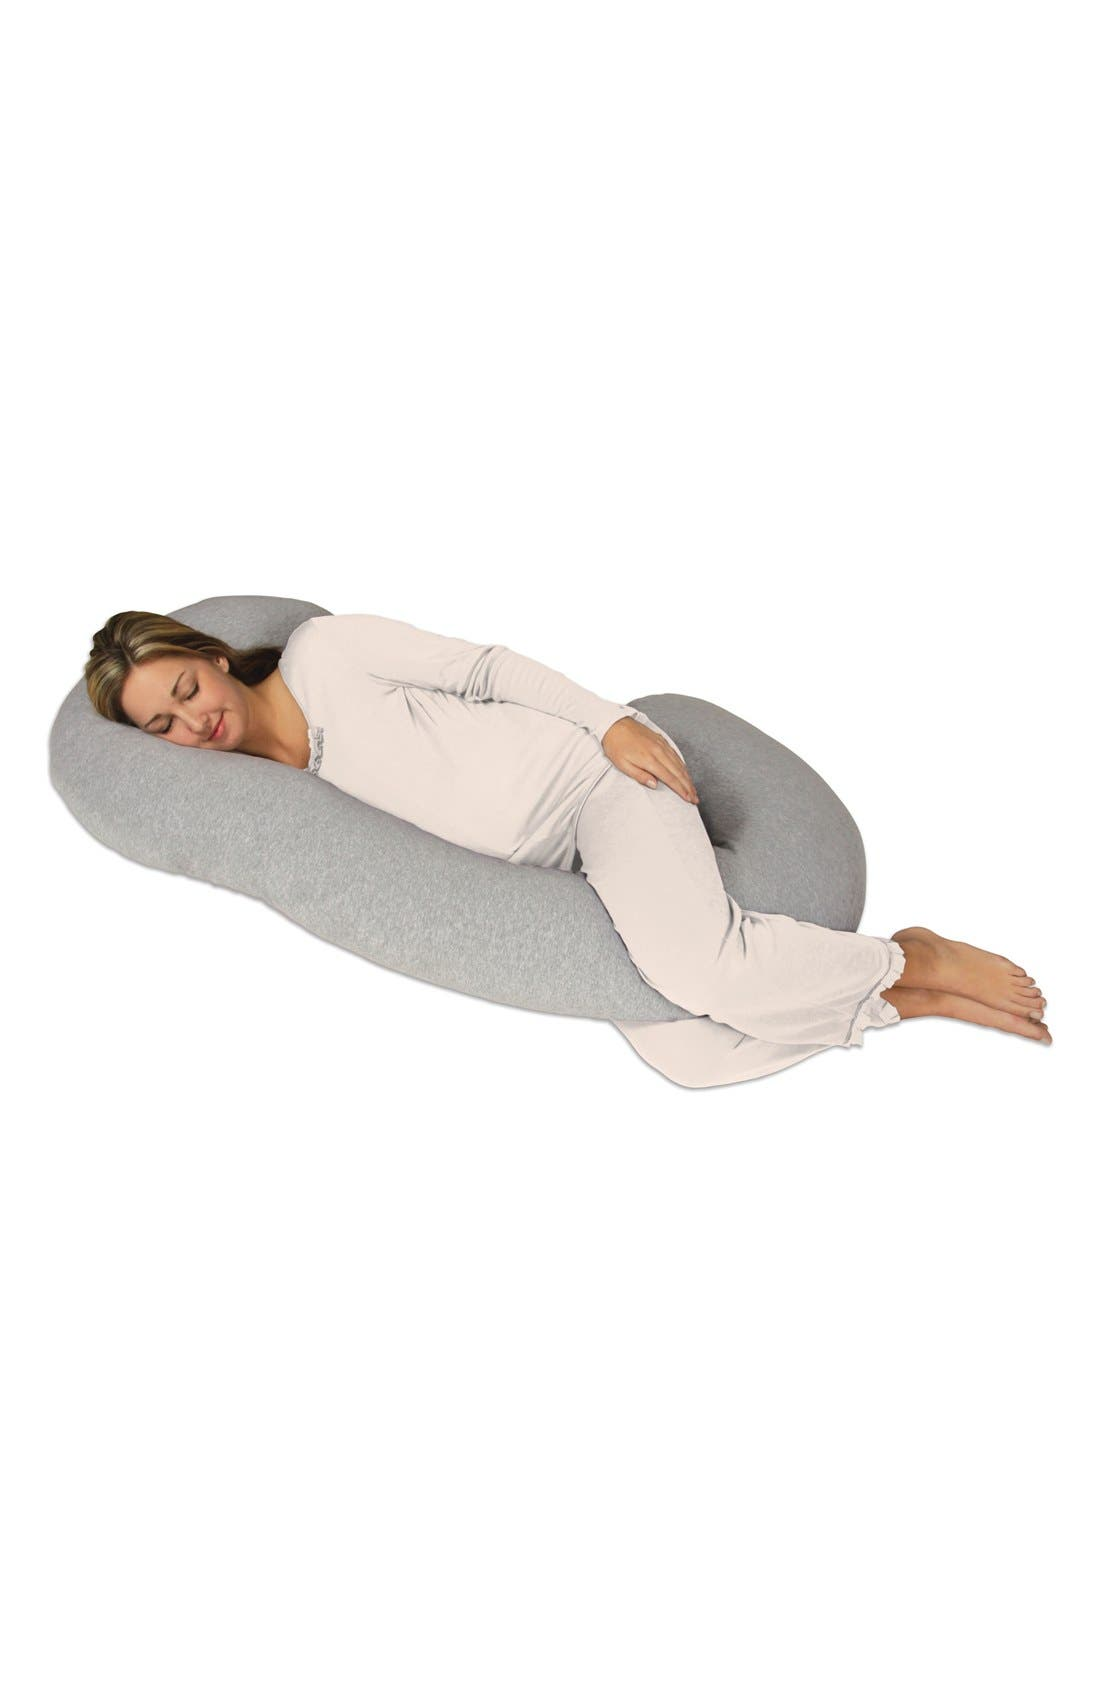 Alternate Image 3  - Leachco Snoogle Chic Full Body Pregnancy Support Pillow with Jersey Cover